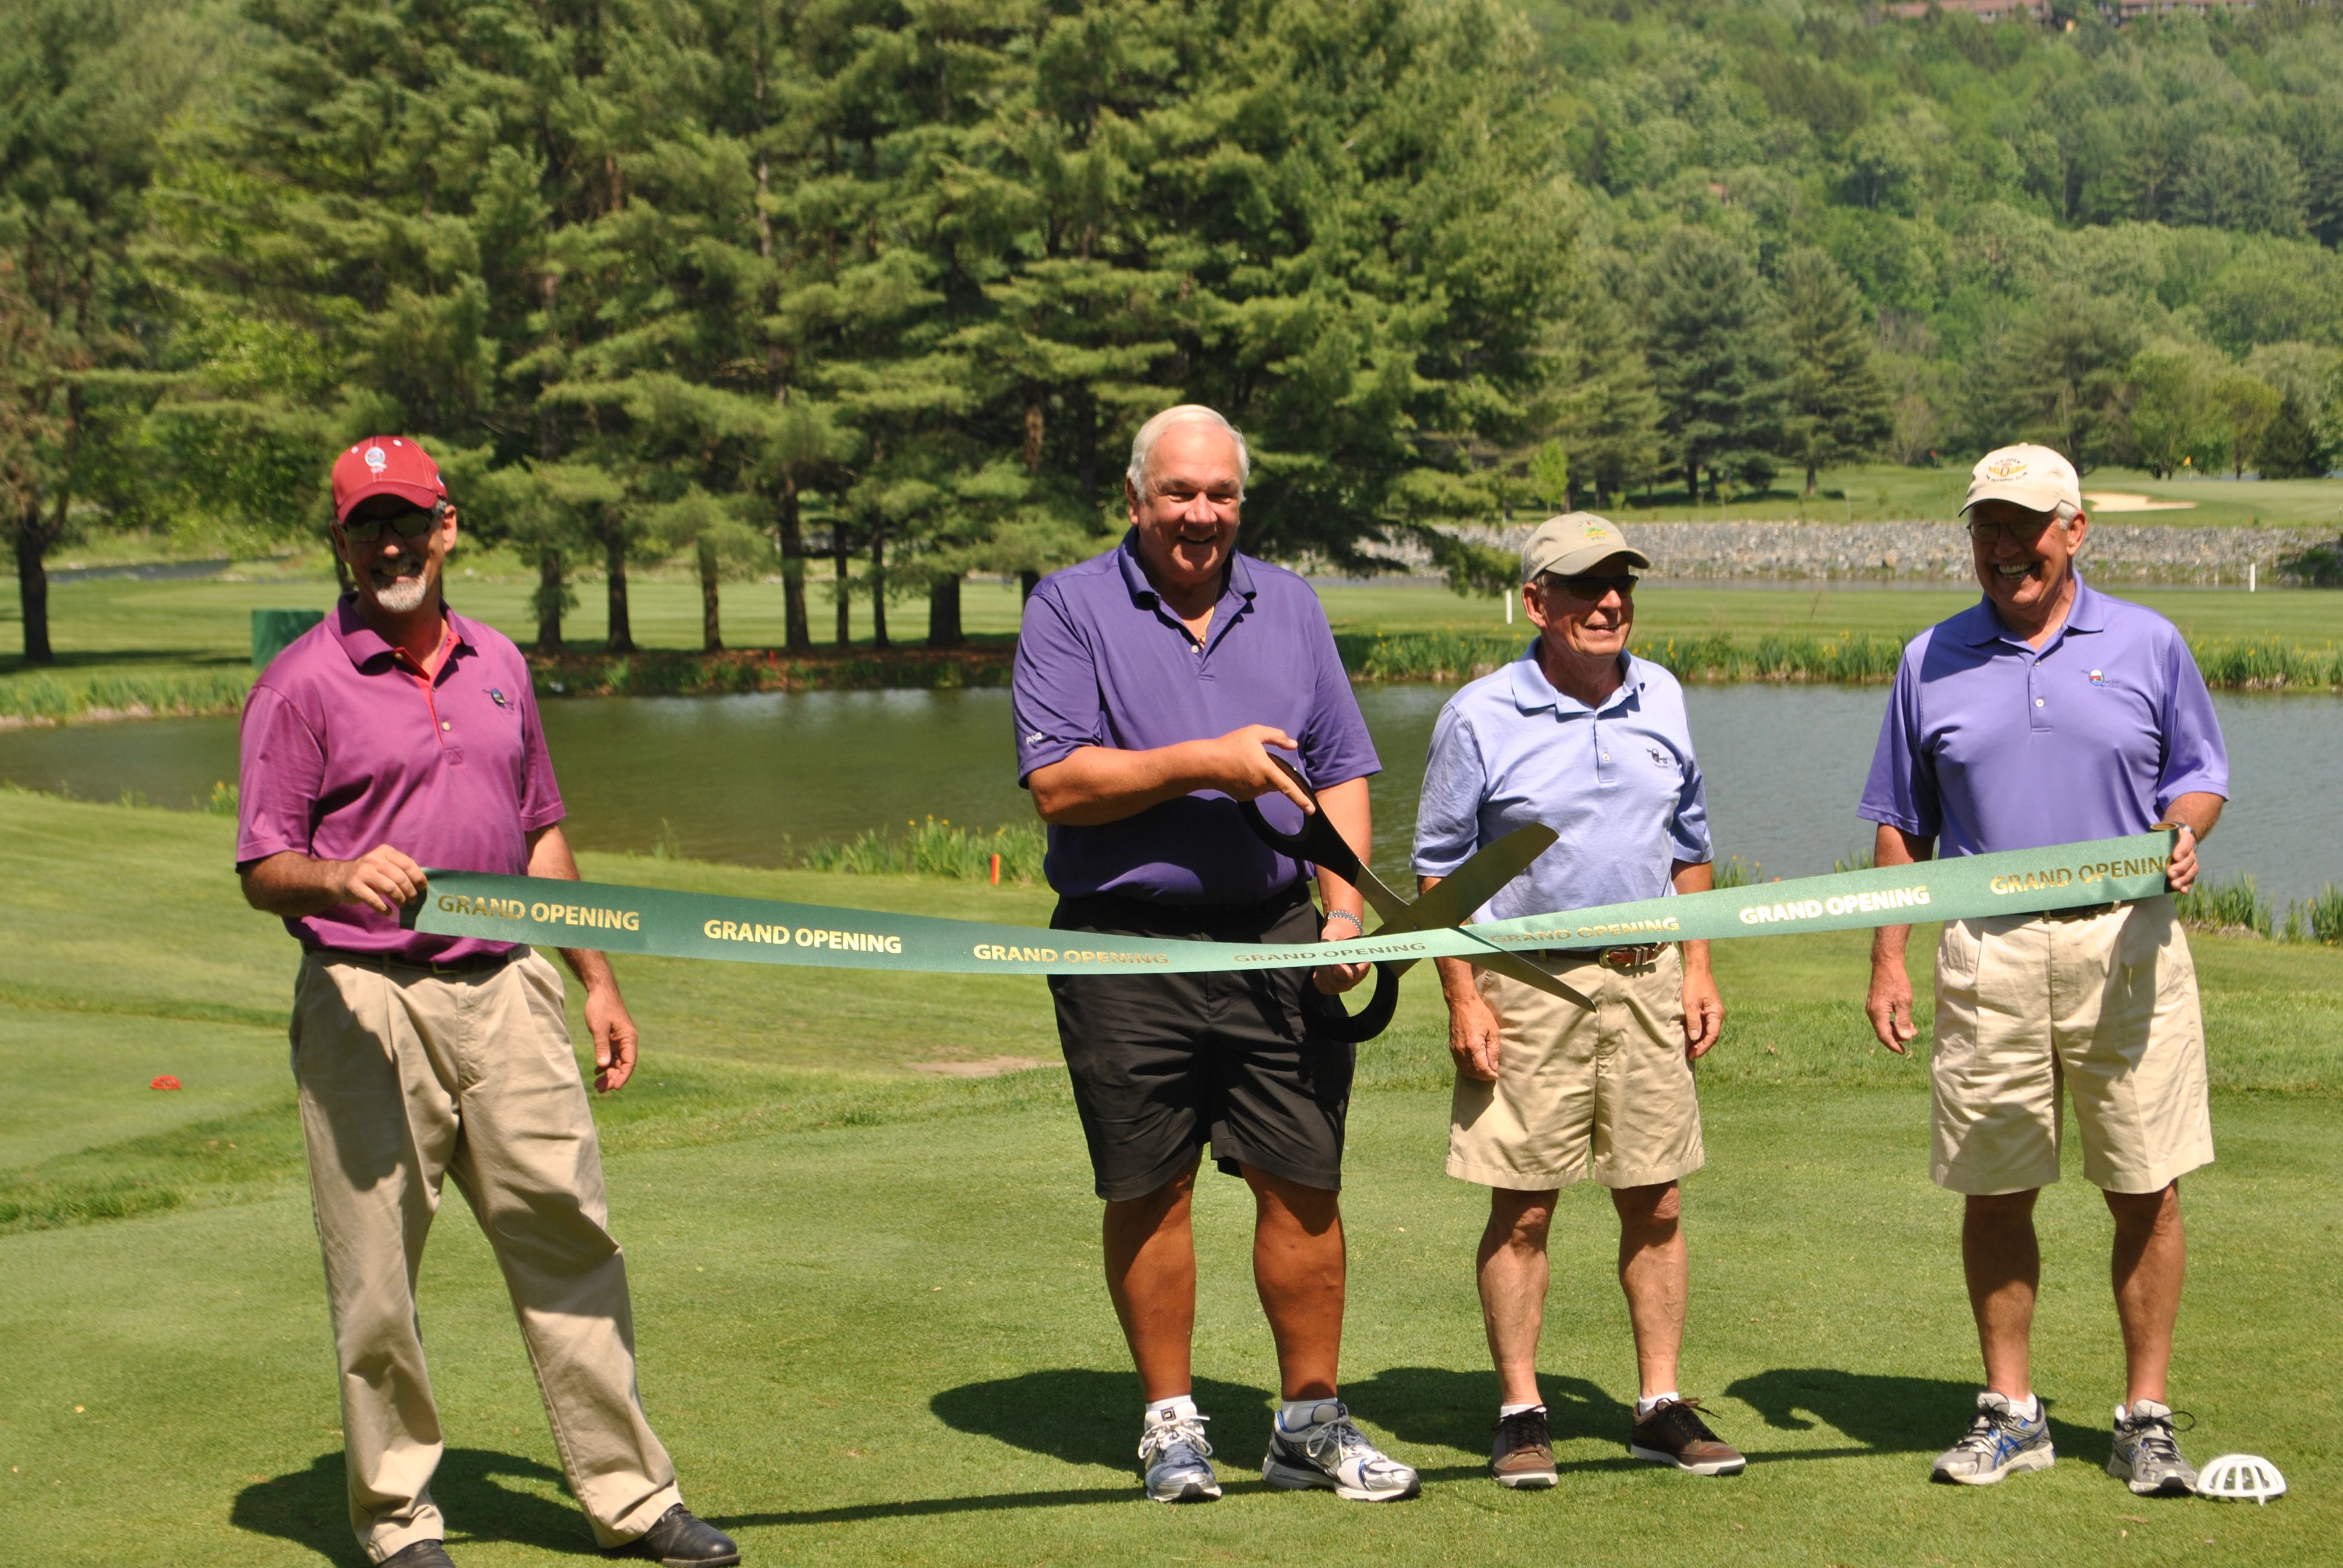 Our Grand Re-opening after a 36 hole renovation, following Hurricane Irene.